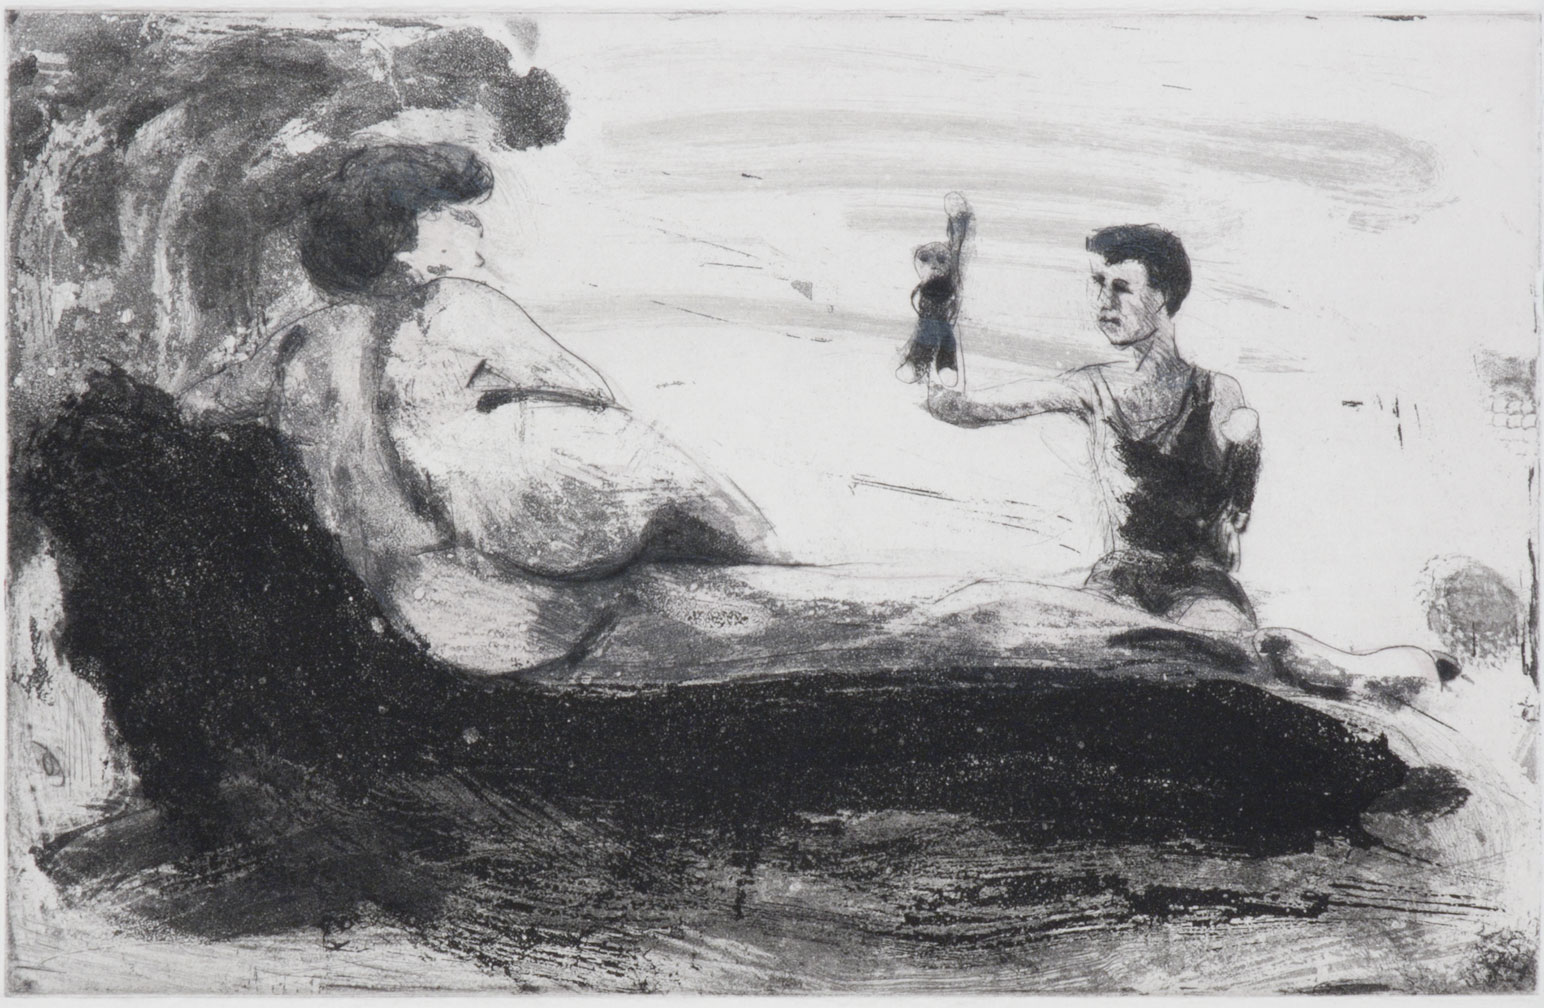 Floating Islands Proof for Puppet Tears, 1985. Study proof H, 6.25 x 9.75 inches